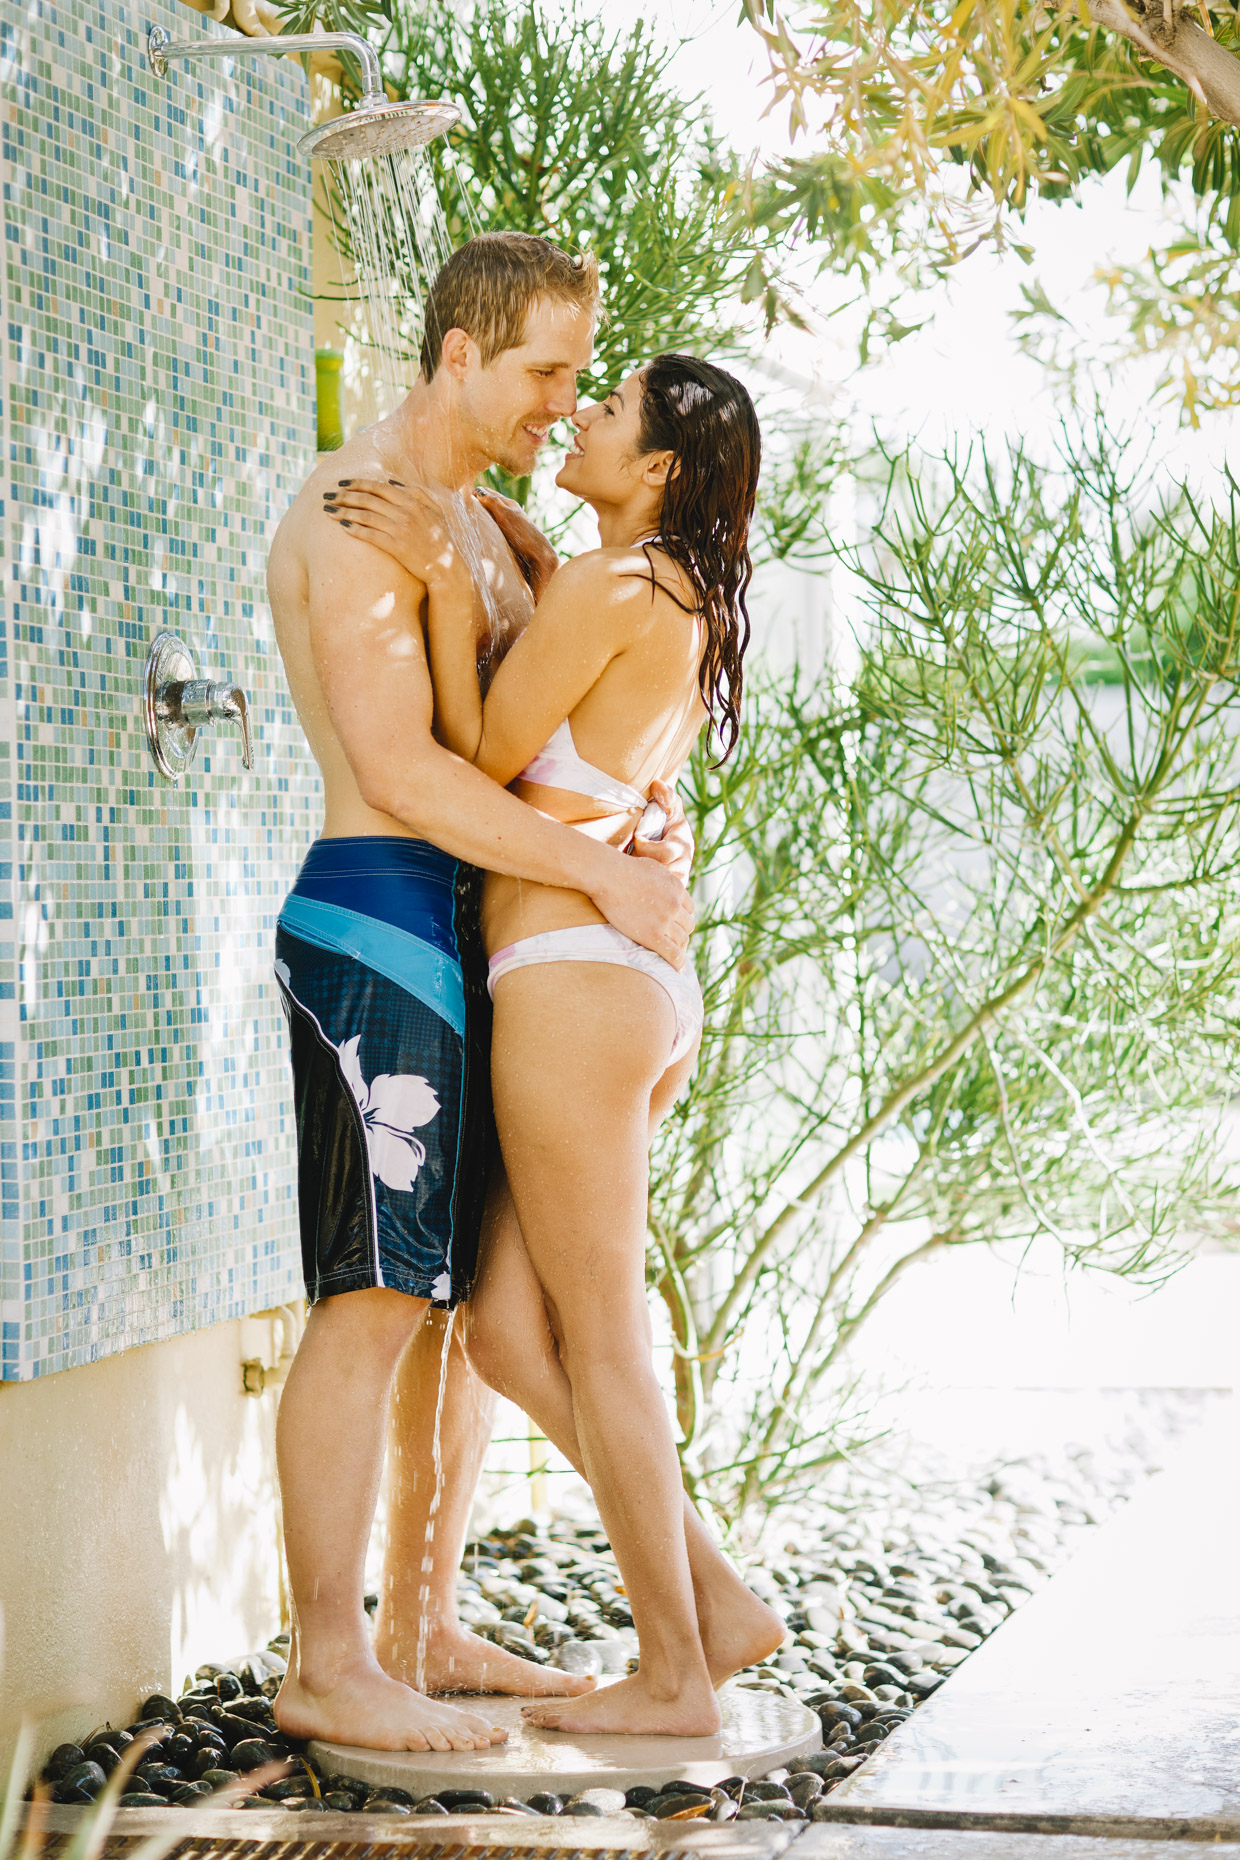 Happy Couple in swimsuits embracing under outdoor shower